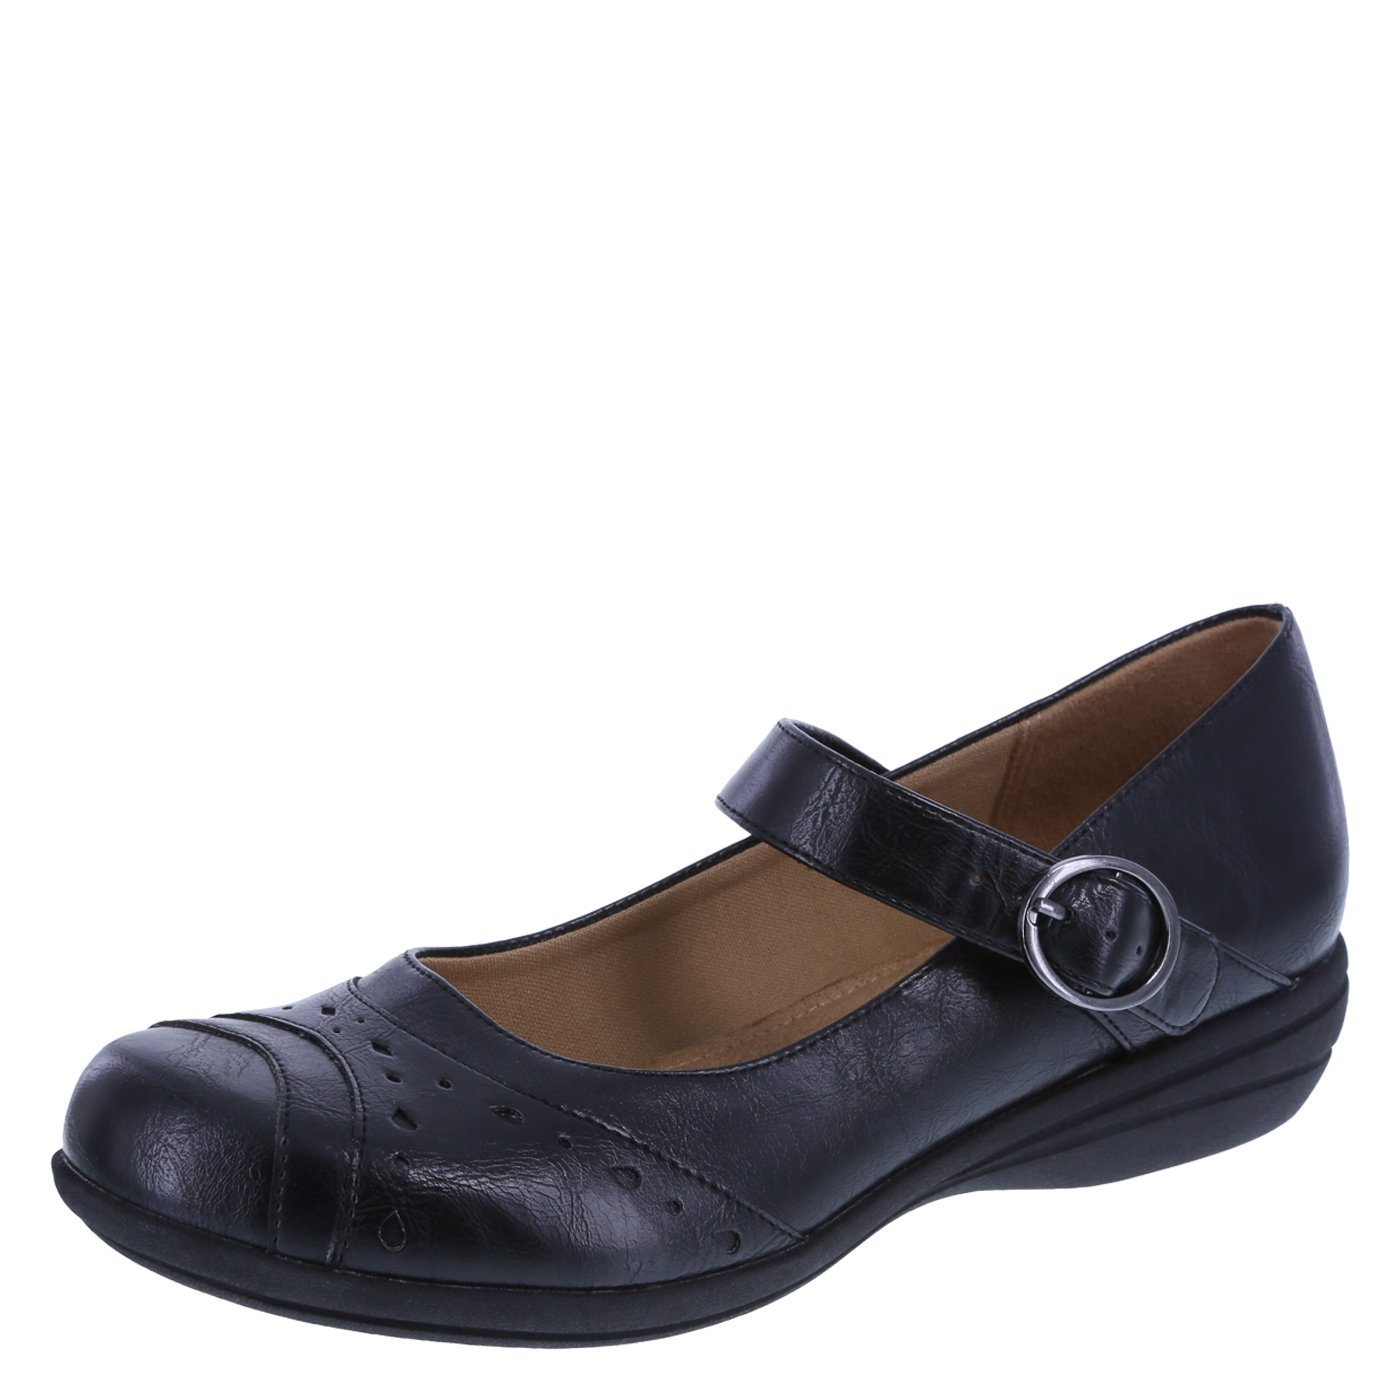 Predictions Comfort Plus by Women's Black Geanette Mary Jane 8.5 Wide